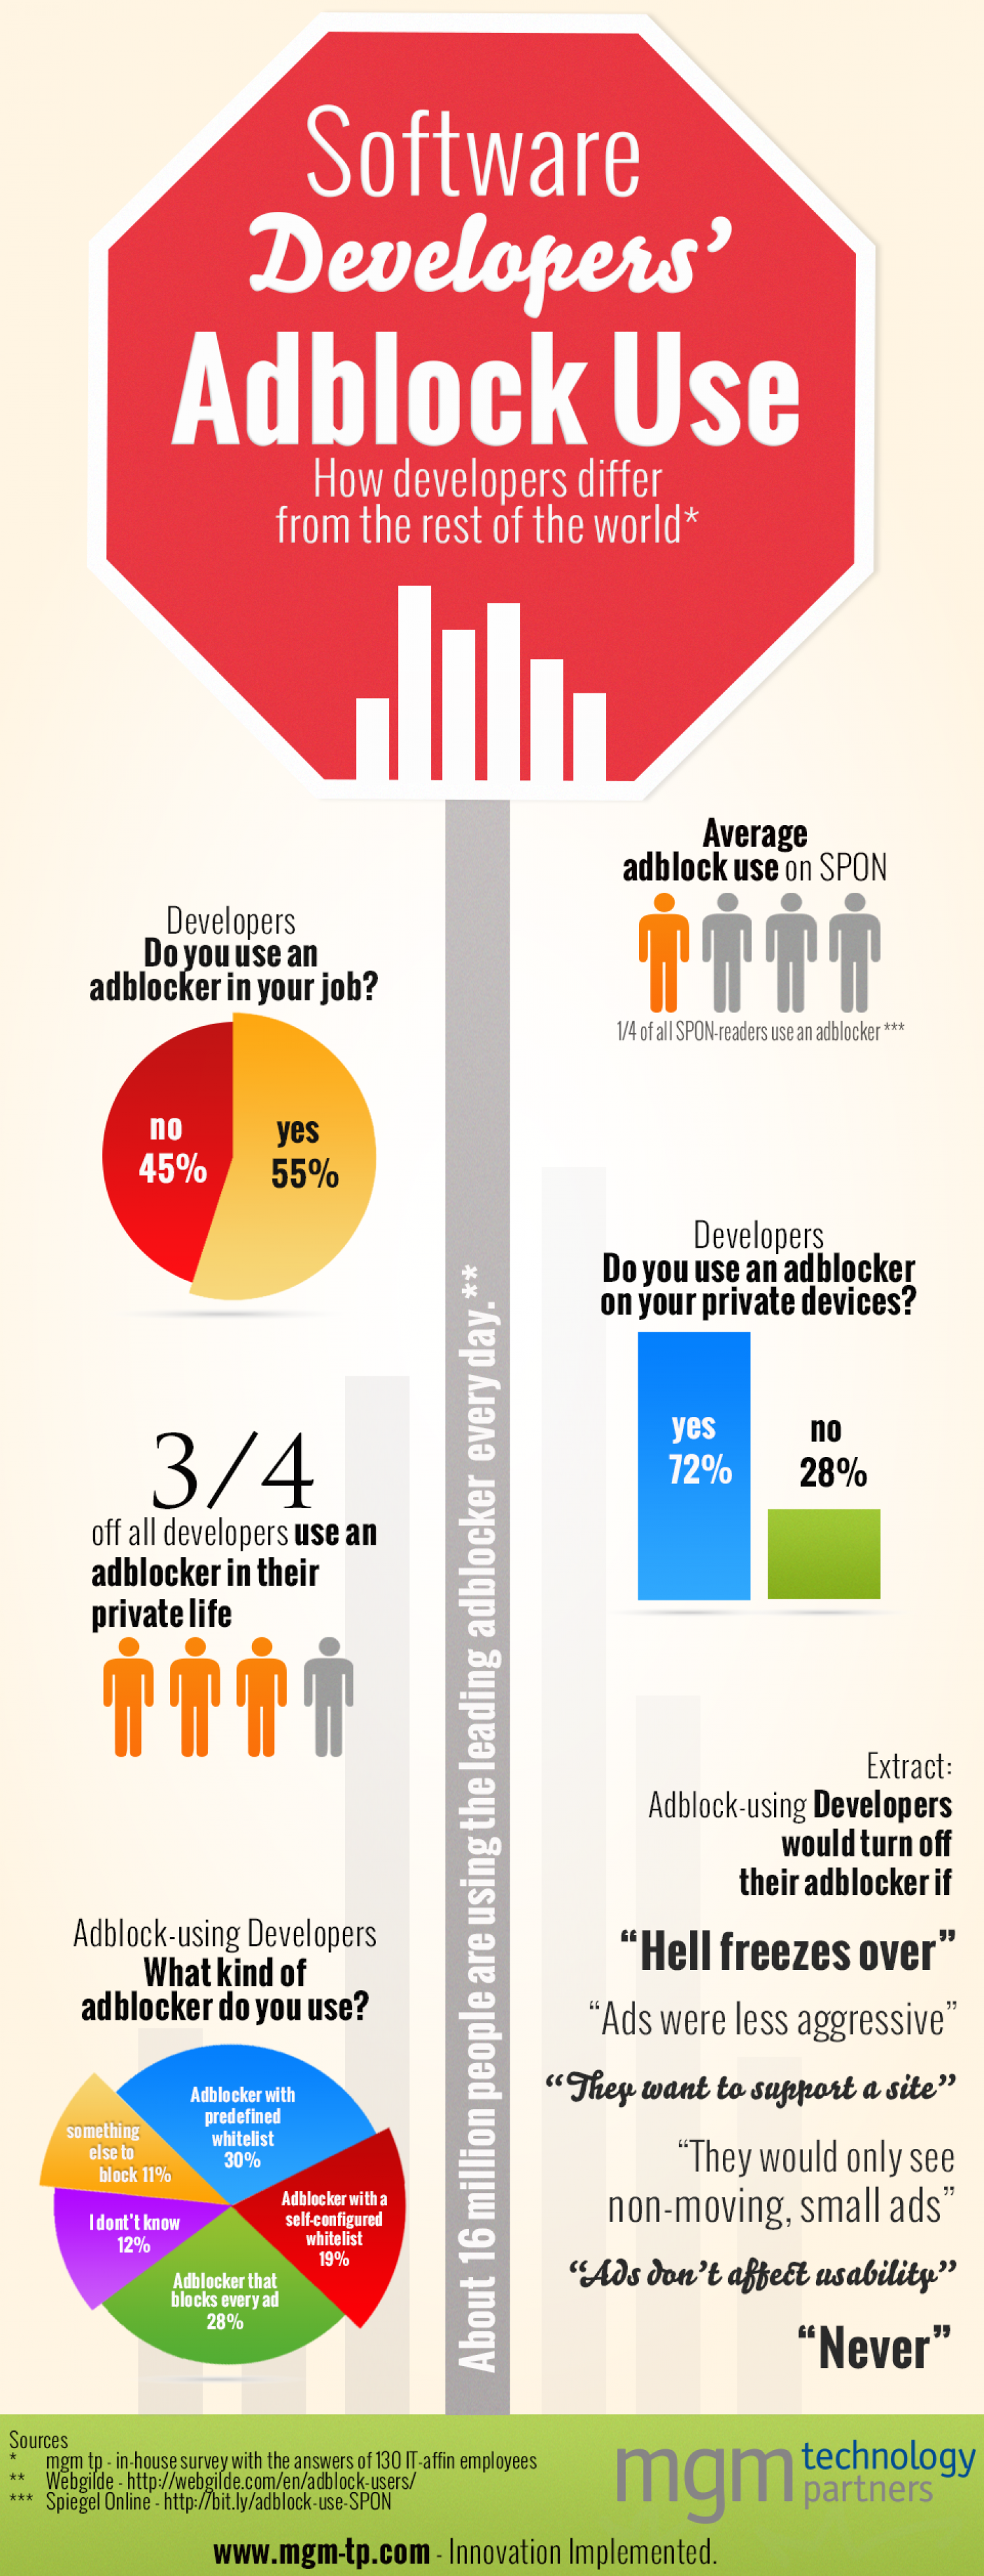 """If Hell Freezes Over"" - Why Developers Use Adblockers Infographic"